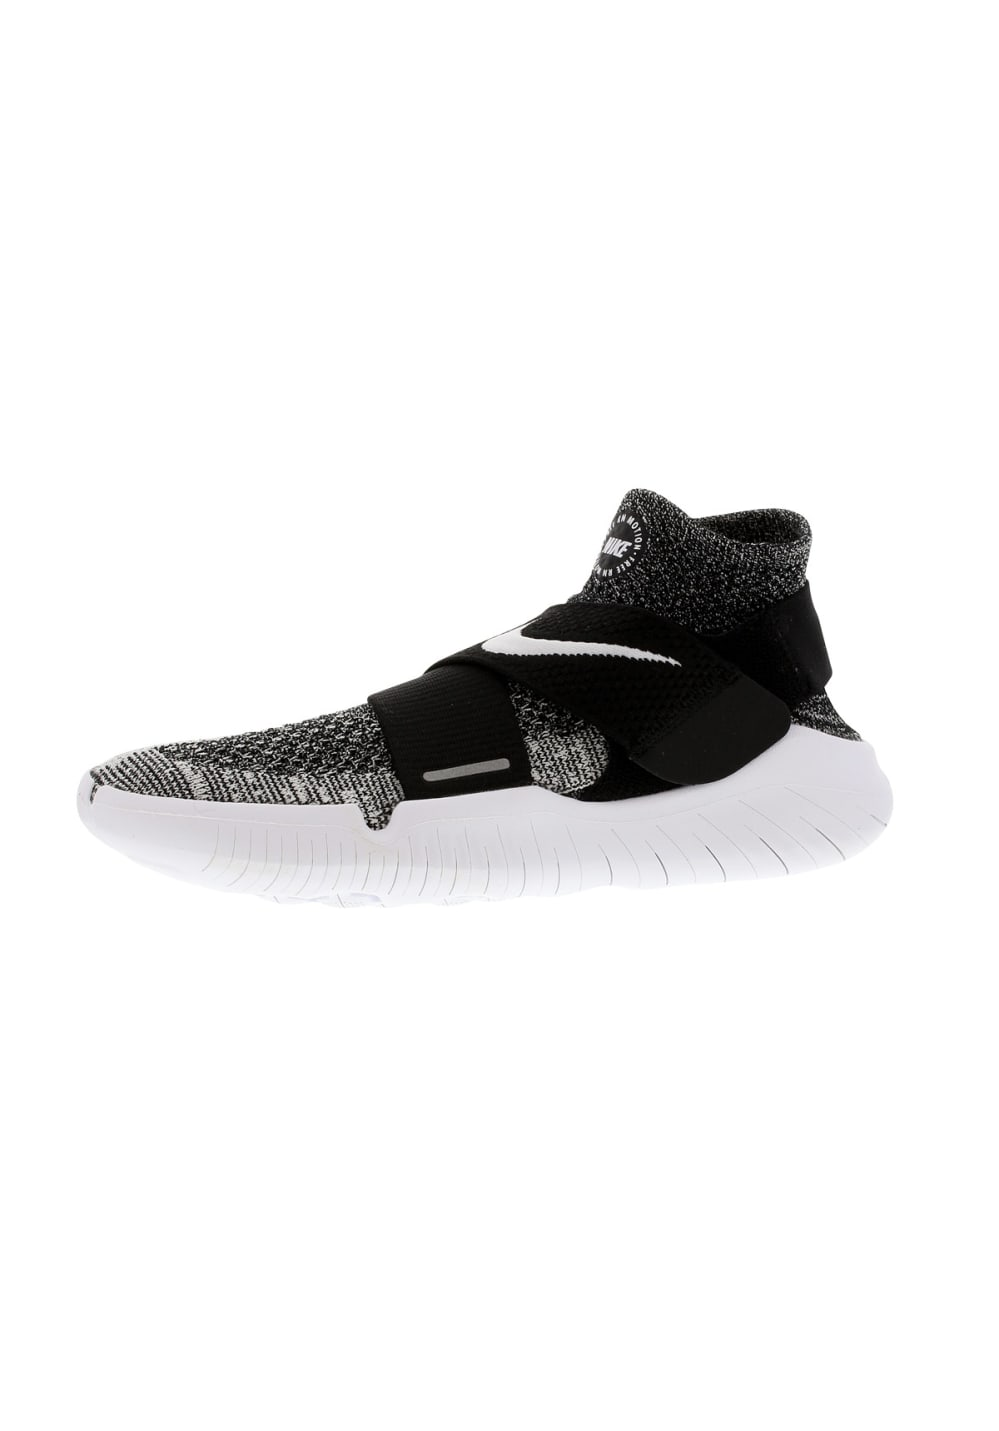 a72bde95c3f Next. -50%. This product is currently out of stock. Nike. Free RN Motion  Flyknit 2018 - Running shoes for Men